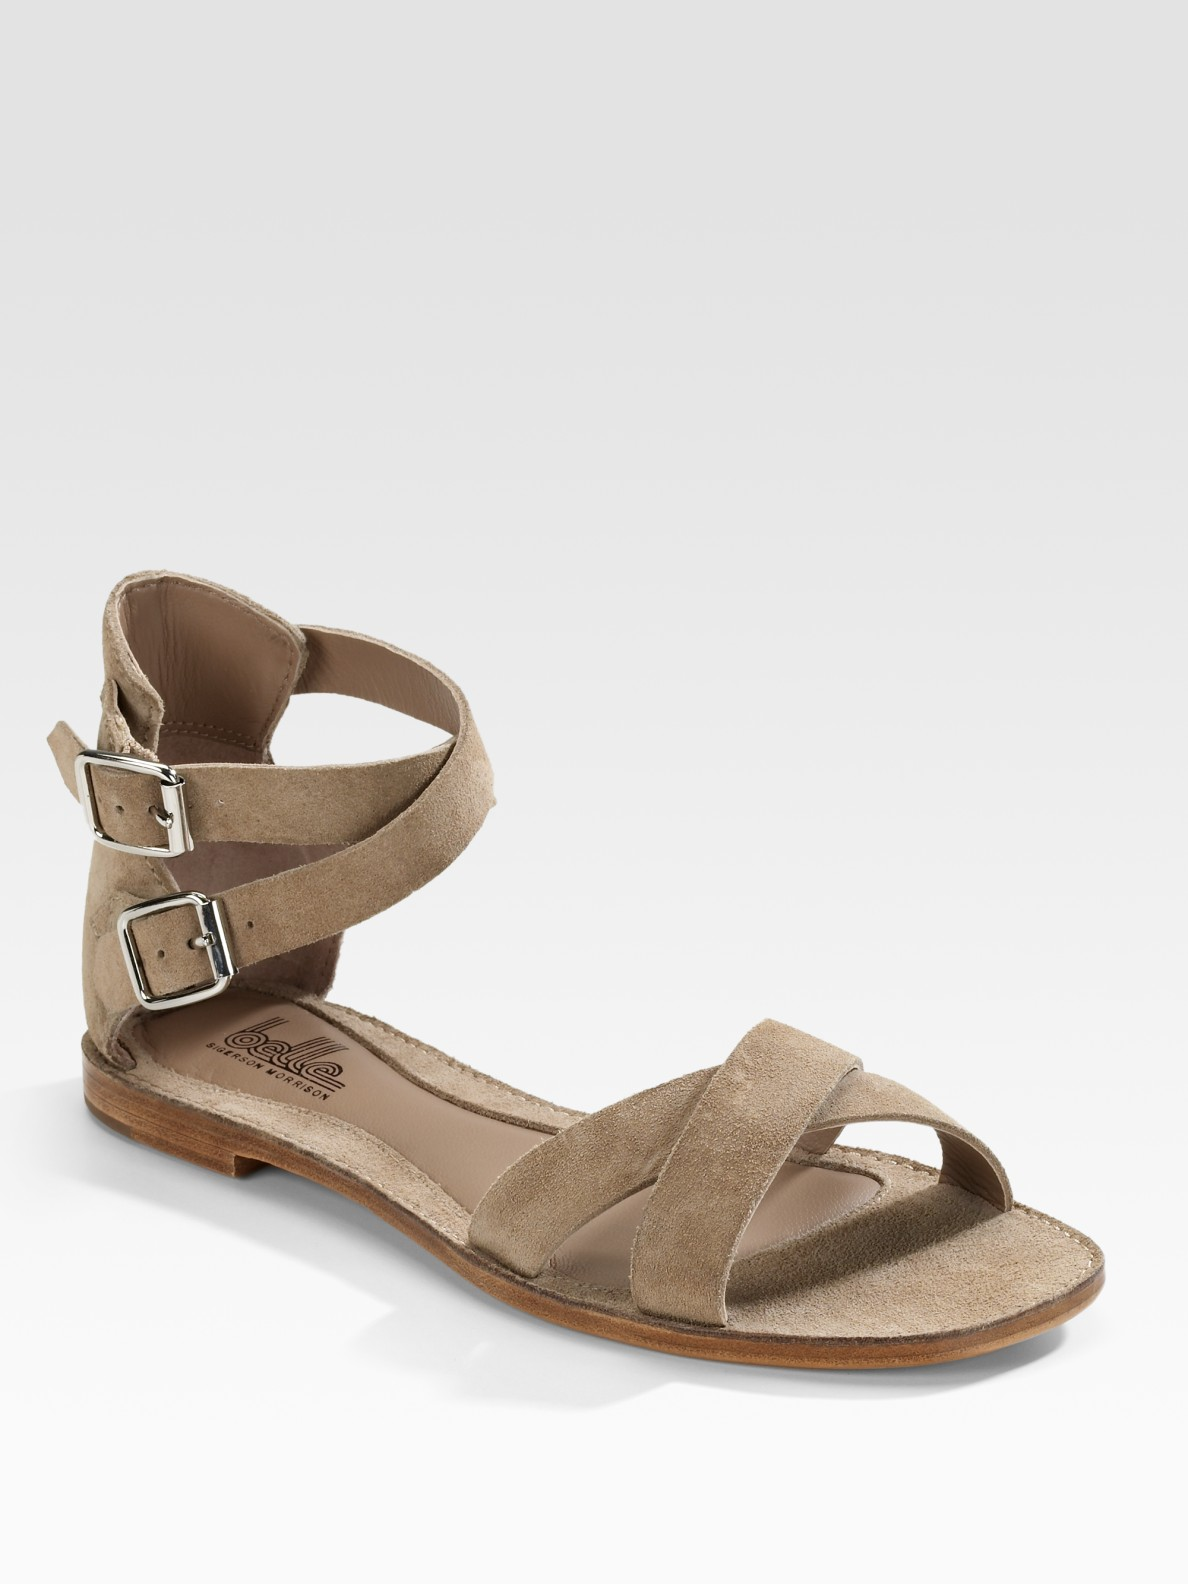 a29112022b00 Lyst - Belle By Sigerson Morrison Suede Crisscross Flat Sandals in Brown